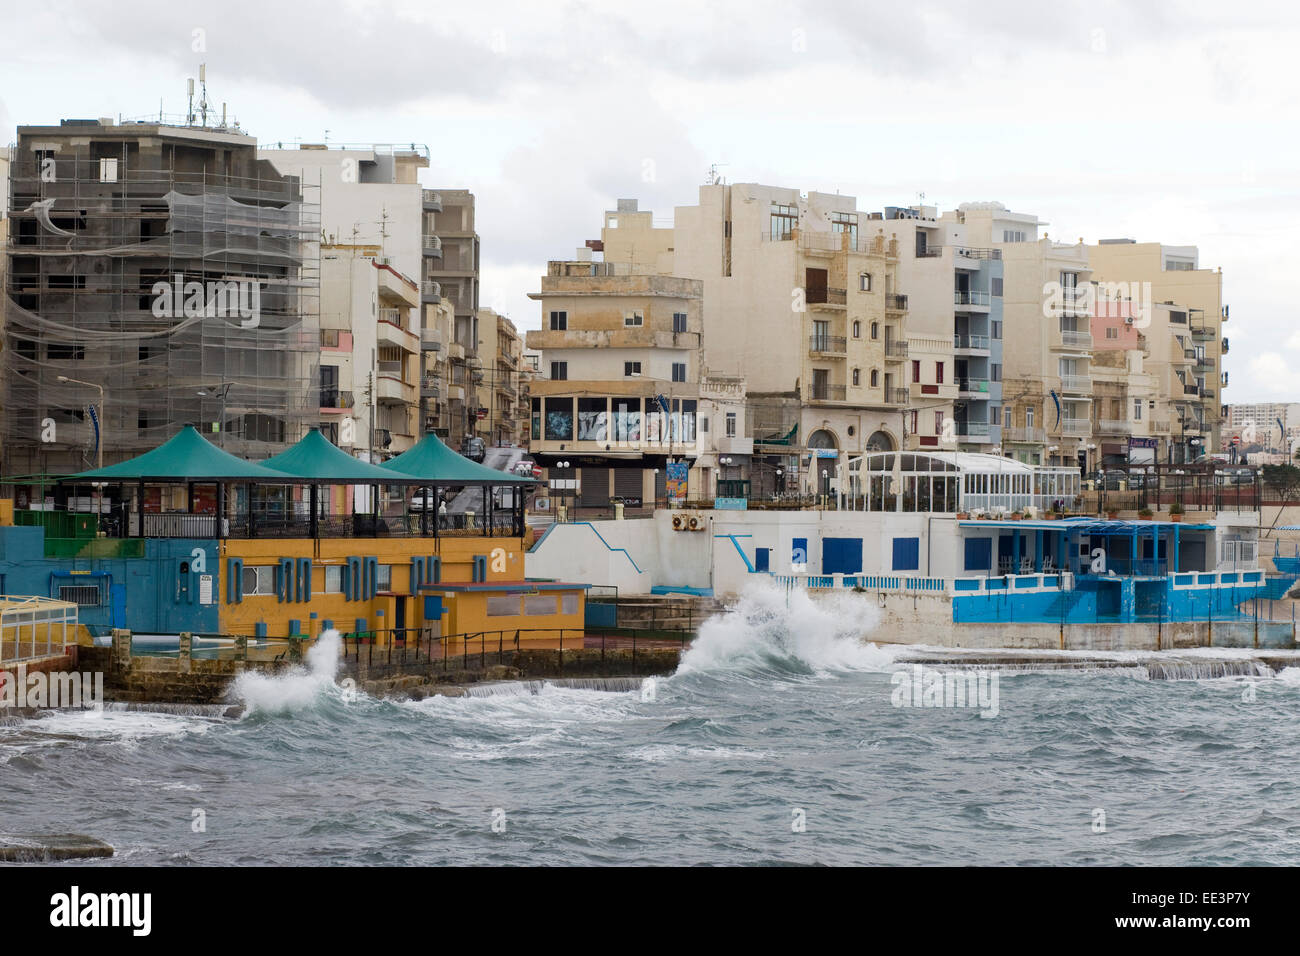 Waves crashing in the surf damaging and flooding local area in Malta - Stock Image